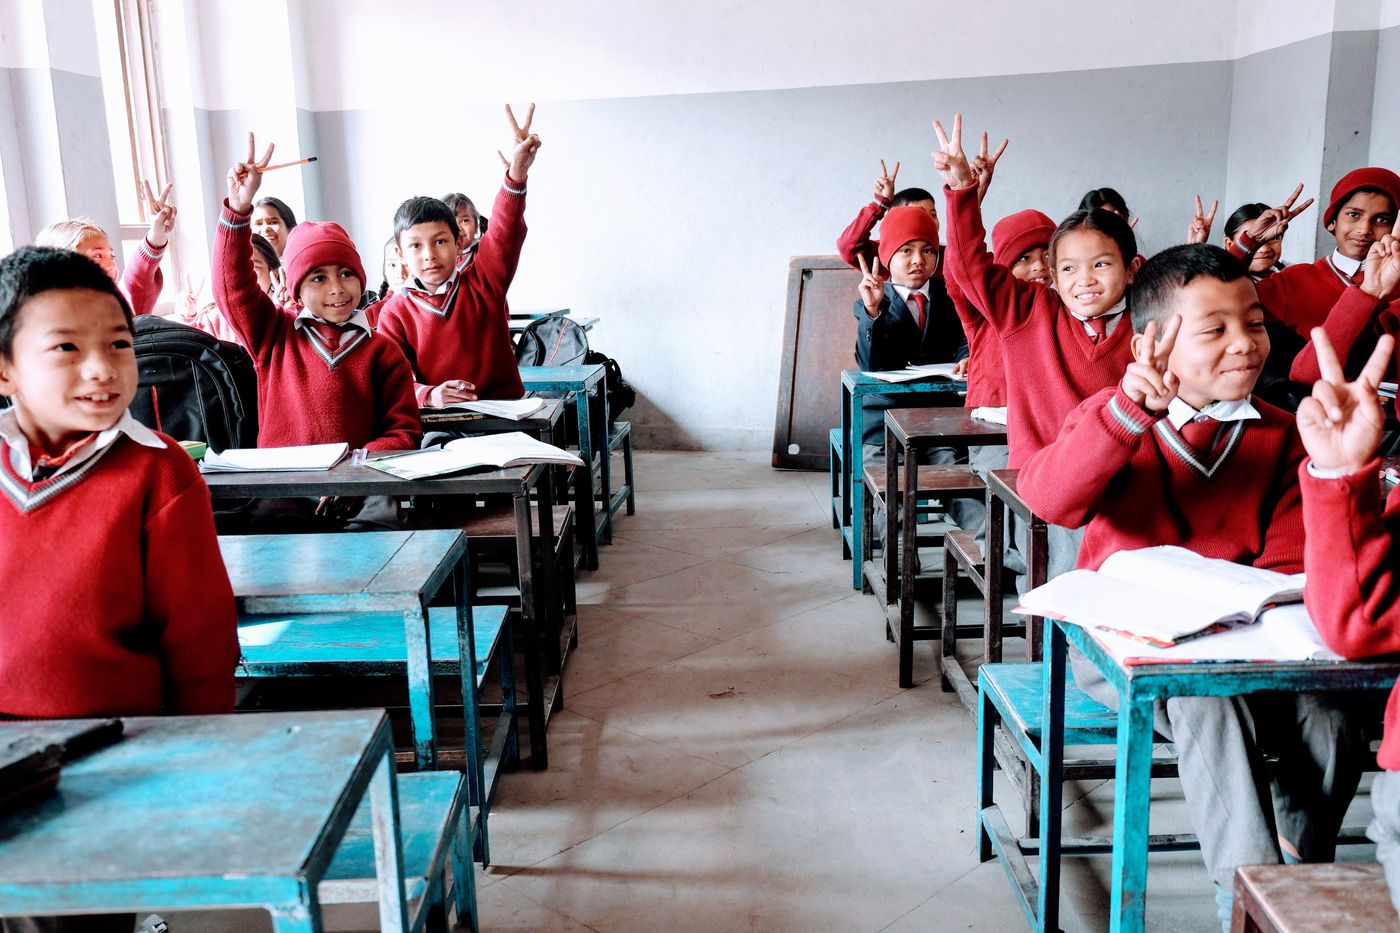 Students at Proxima International School, which partners with the Happy Kids Center's education program, EducateHKC.